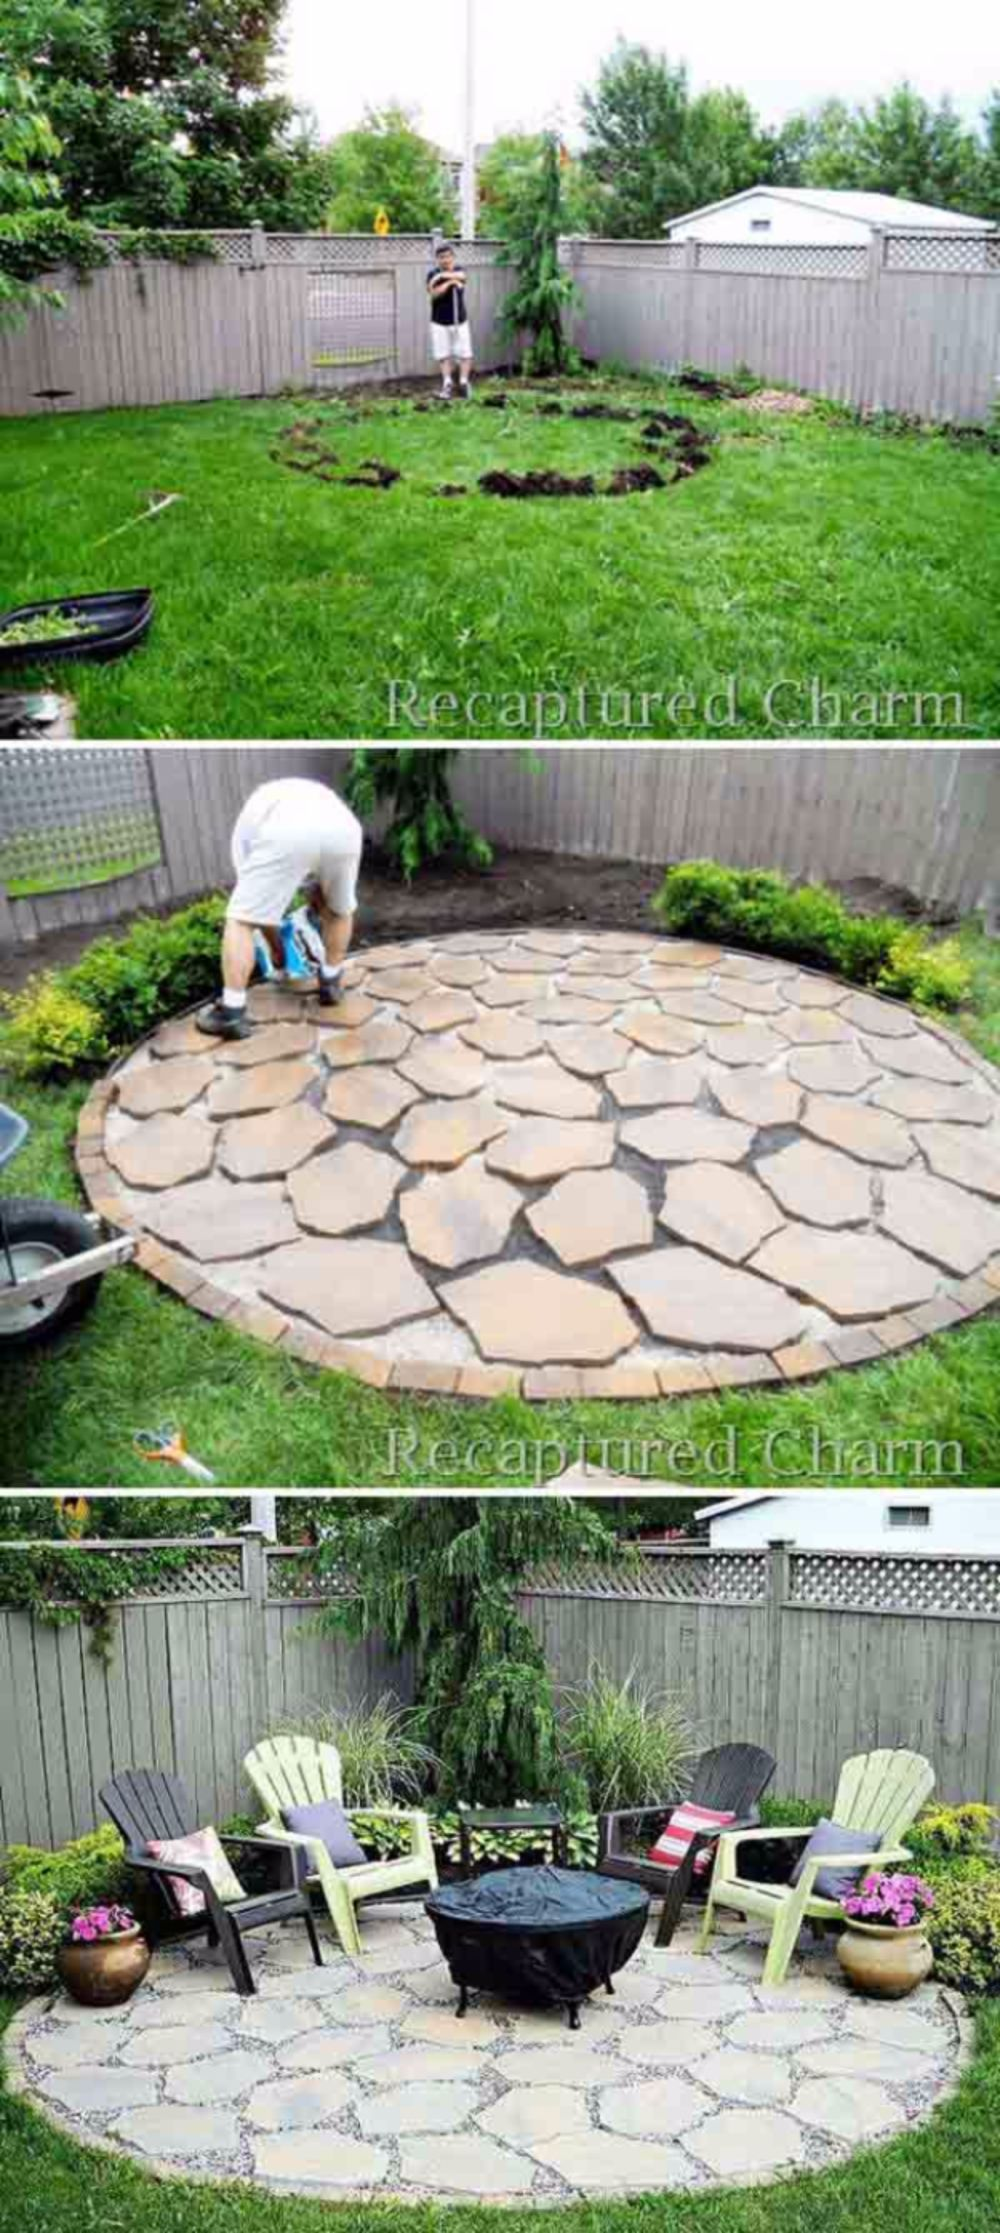 More Ideas Below Diy Square Round Cinder Block Fire Pit How To Make Ideas Simple Easy Backyards Cinder Block Fire Pit Gril Backyard Backyard Landscaping Patio